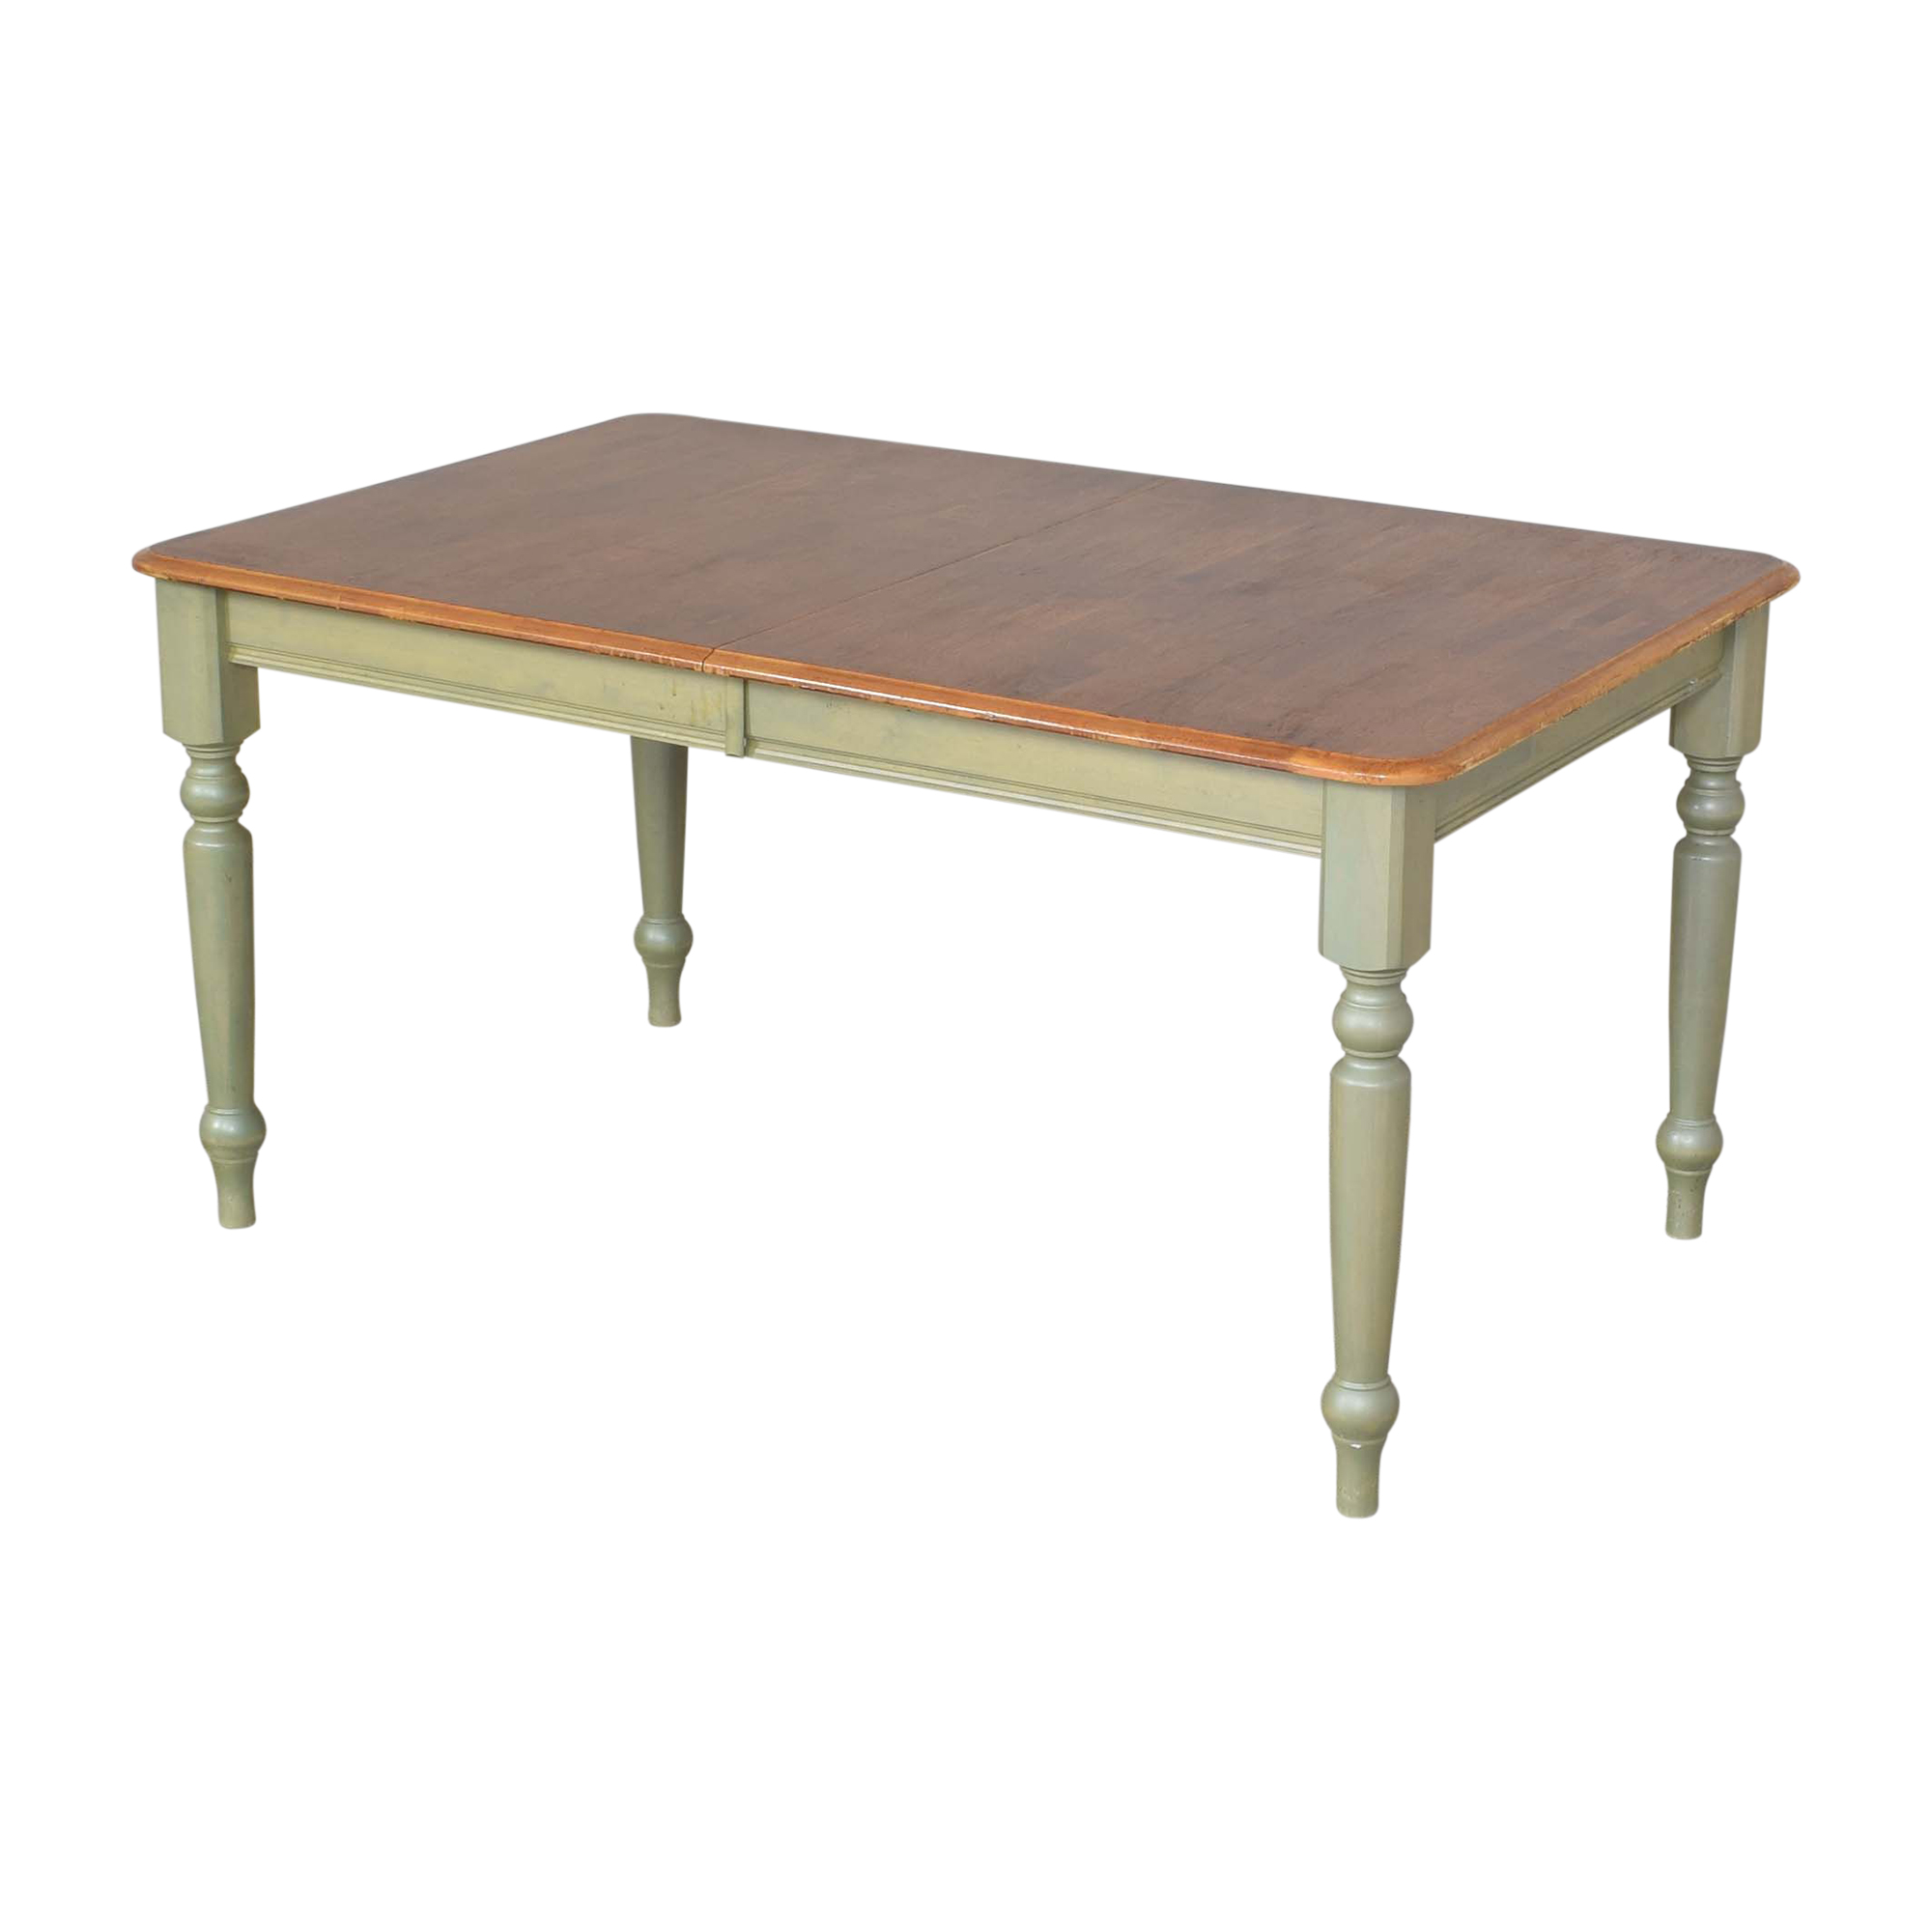 Canadel Canadel Farmhouse Dining Table brown & green